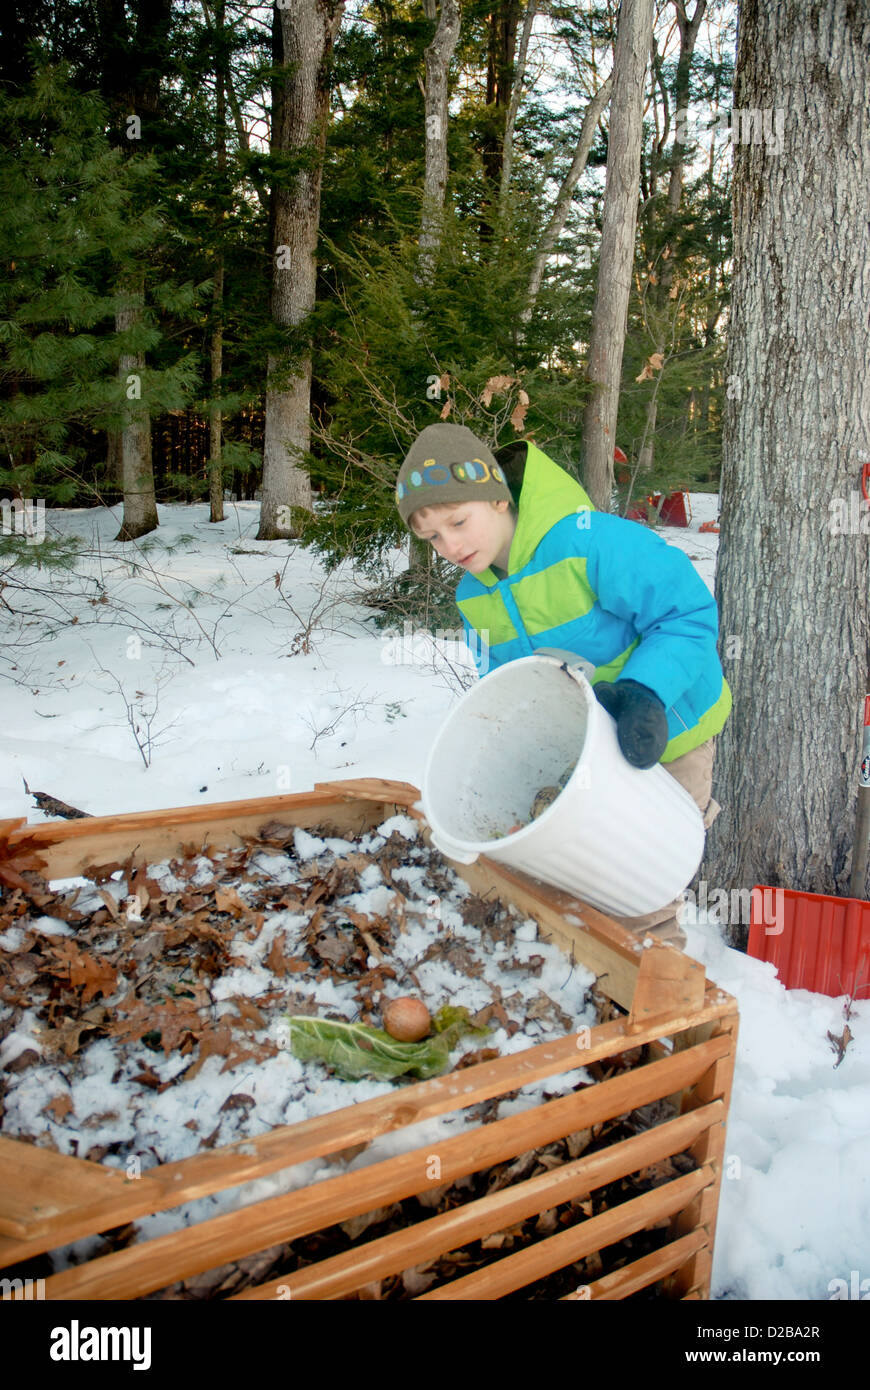 5 Year Old And 8 Year Old Girls Dumping Food Scraps Into Compost Bin - Stock Image